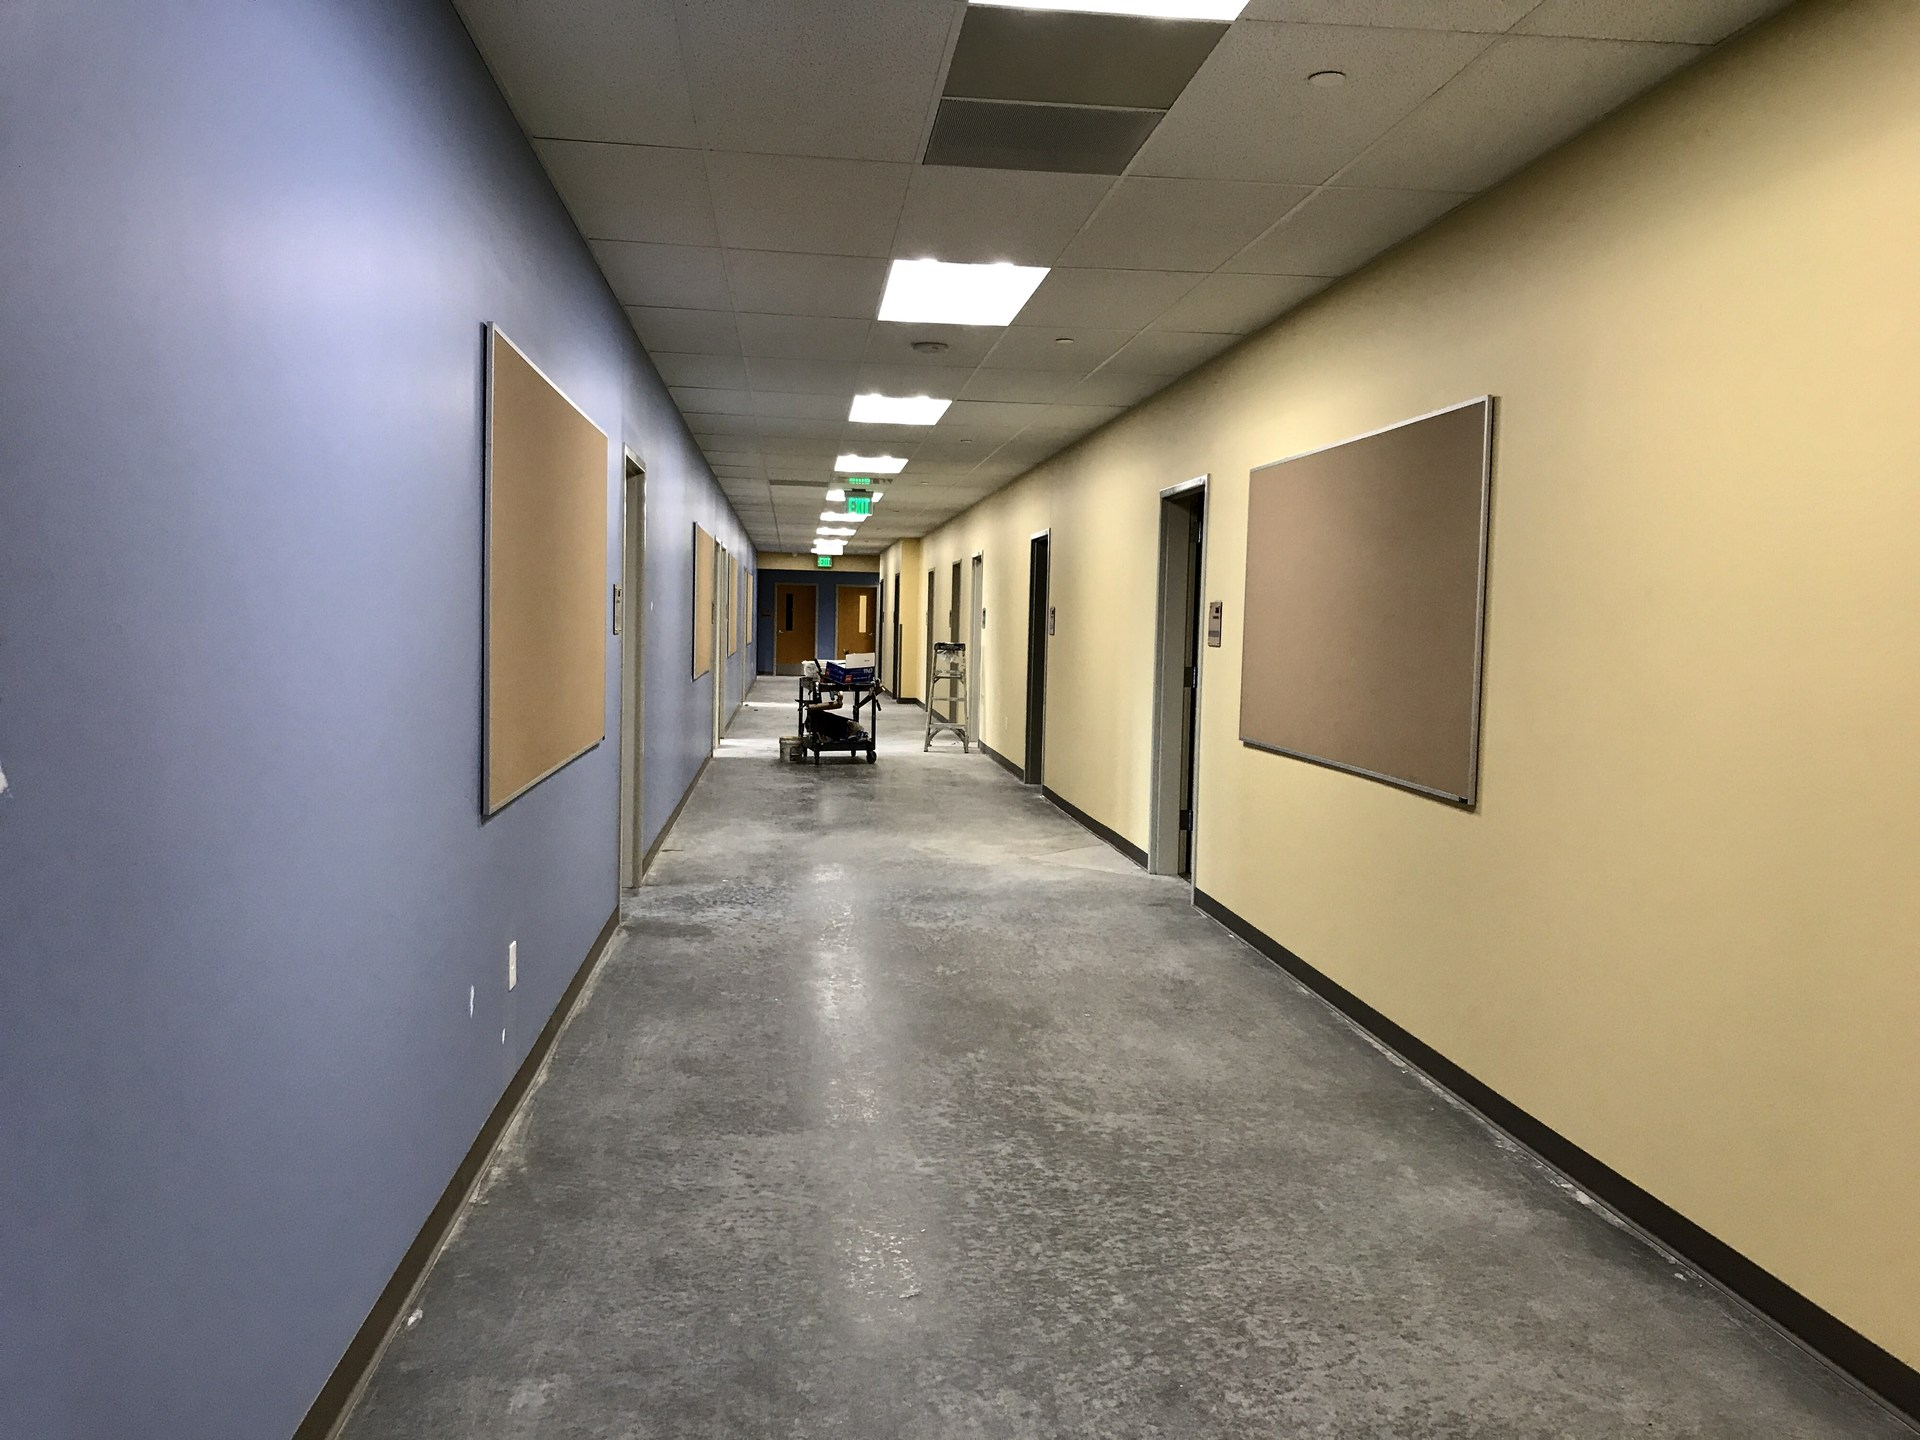 Hallway with yellow and blue walls